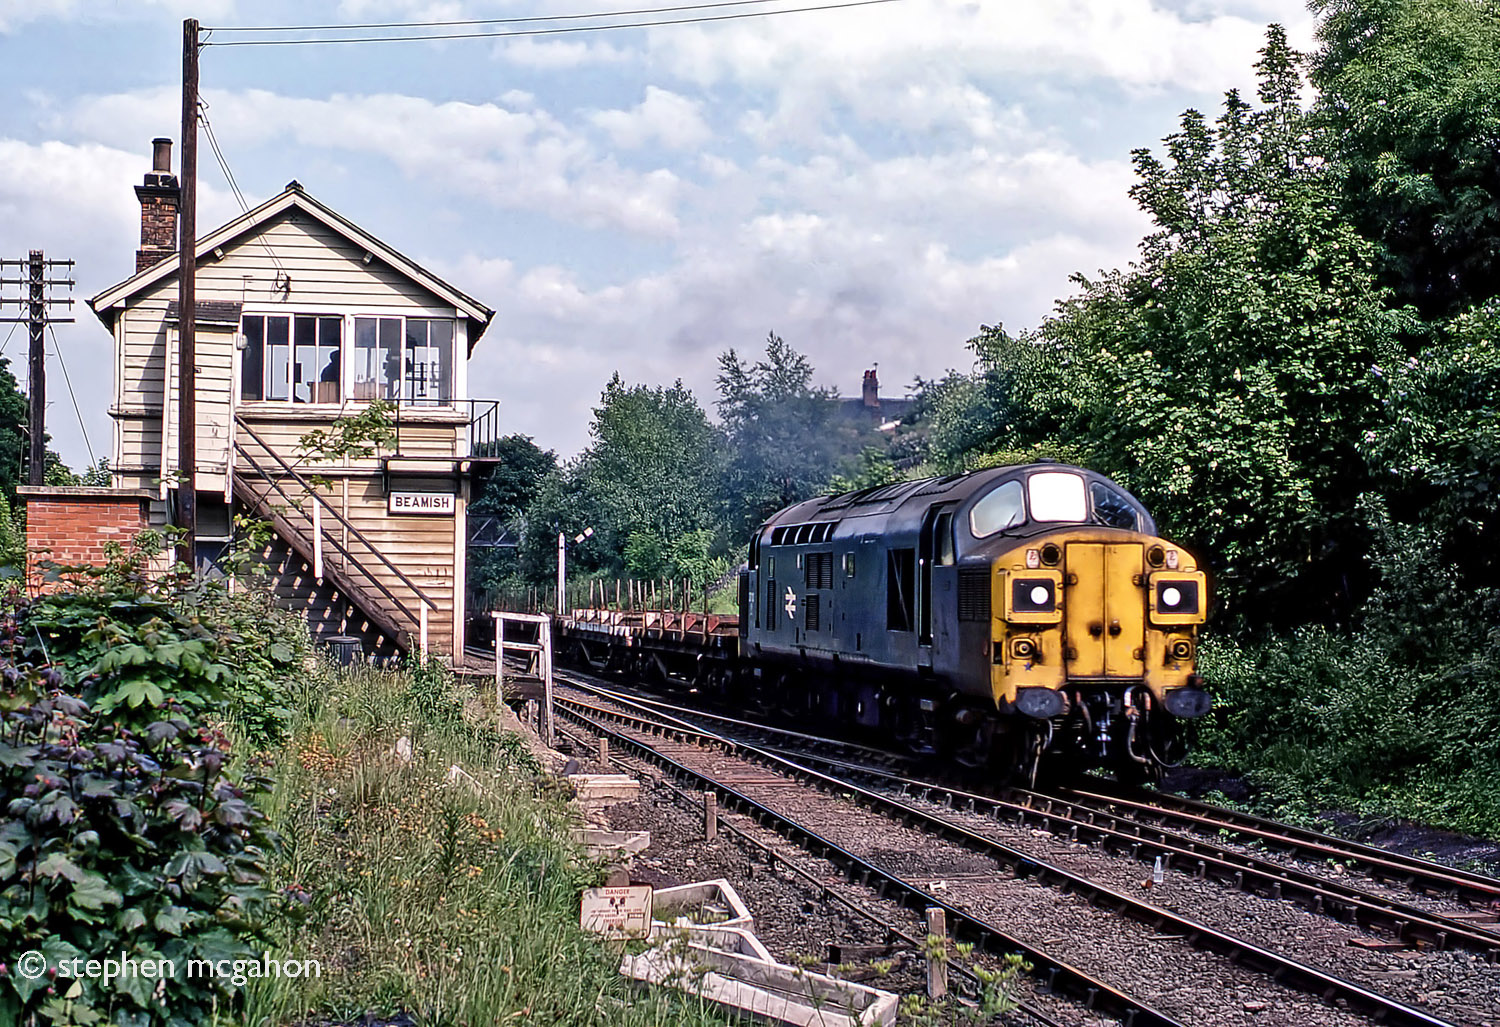 37113 working hard on the 1 in 50 bank past Beamish box with empty steel bolsters for Consett steelworks on 20th June 1978. The gradient eased here to 1 in 264 for a short distance through the site of Beamish station before resuming at 1 in 50, with even a stretch of 1 in 35, as far as Annfield Plain where the climb became less taxing for the last few miles to Consett. Photo copyright Stephen McGahon